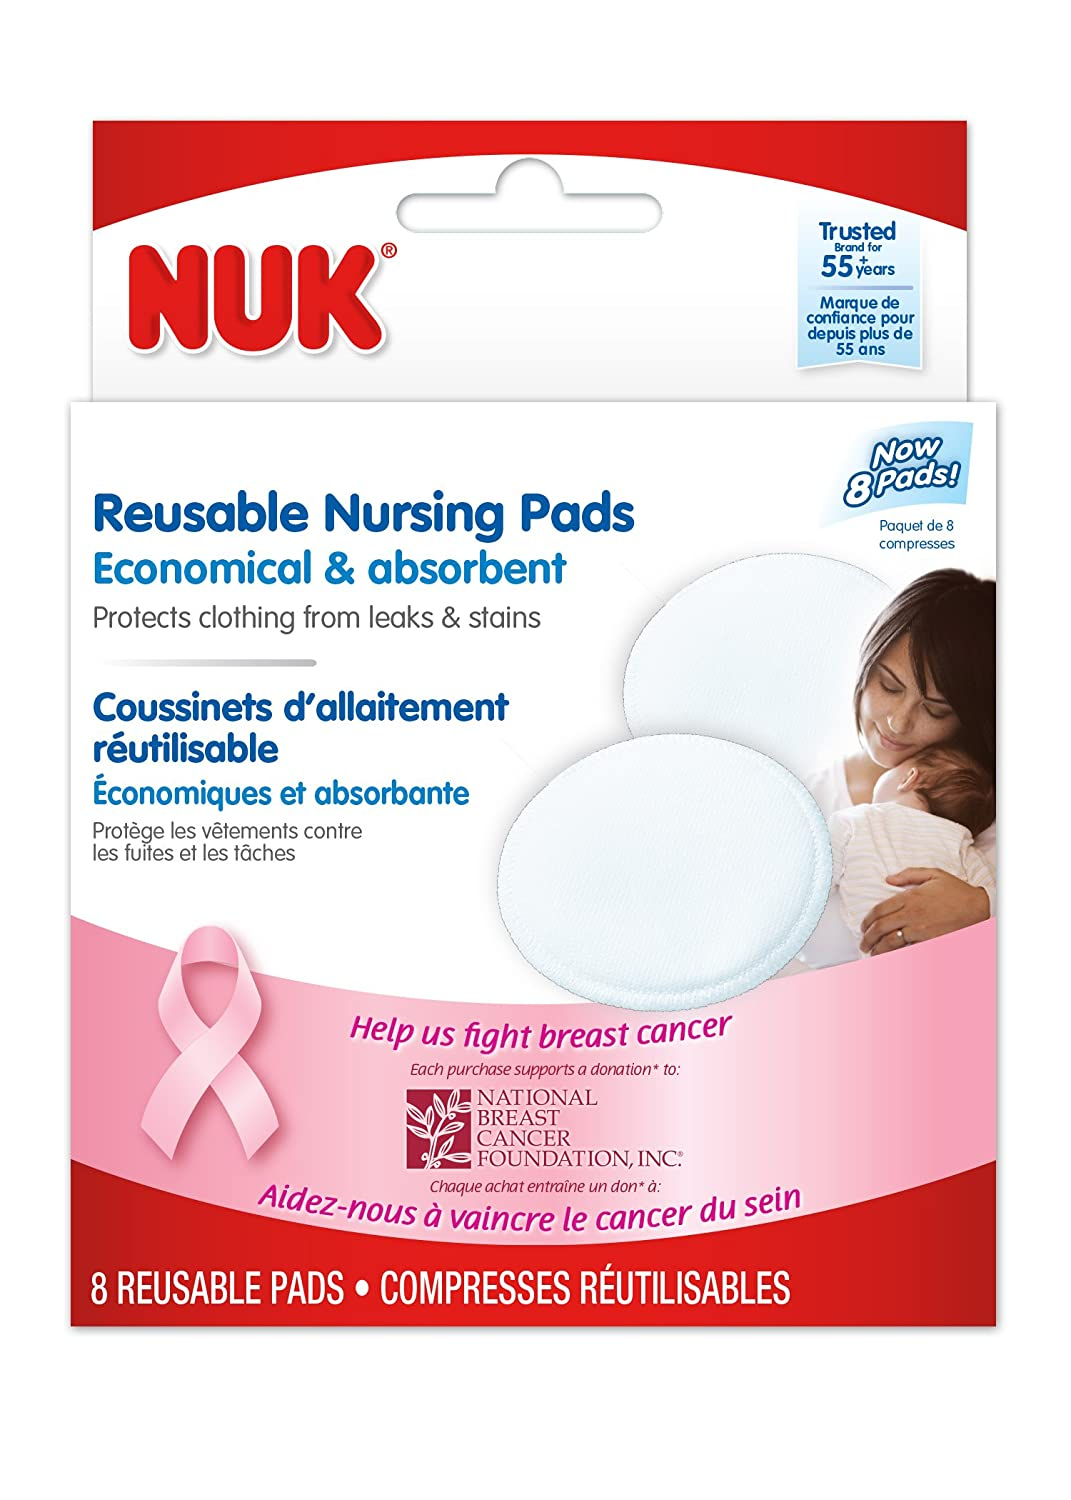 Nuk Reusable Nursing Pads